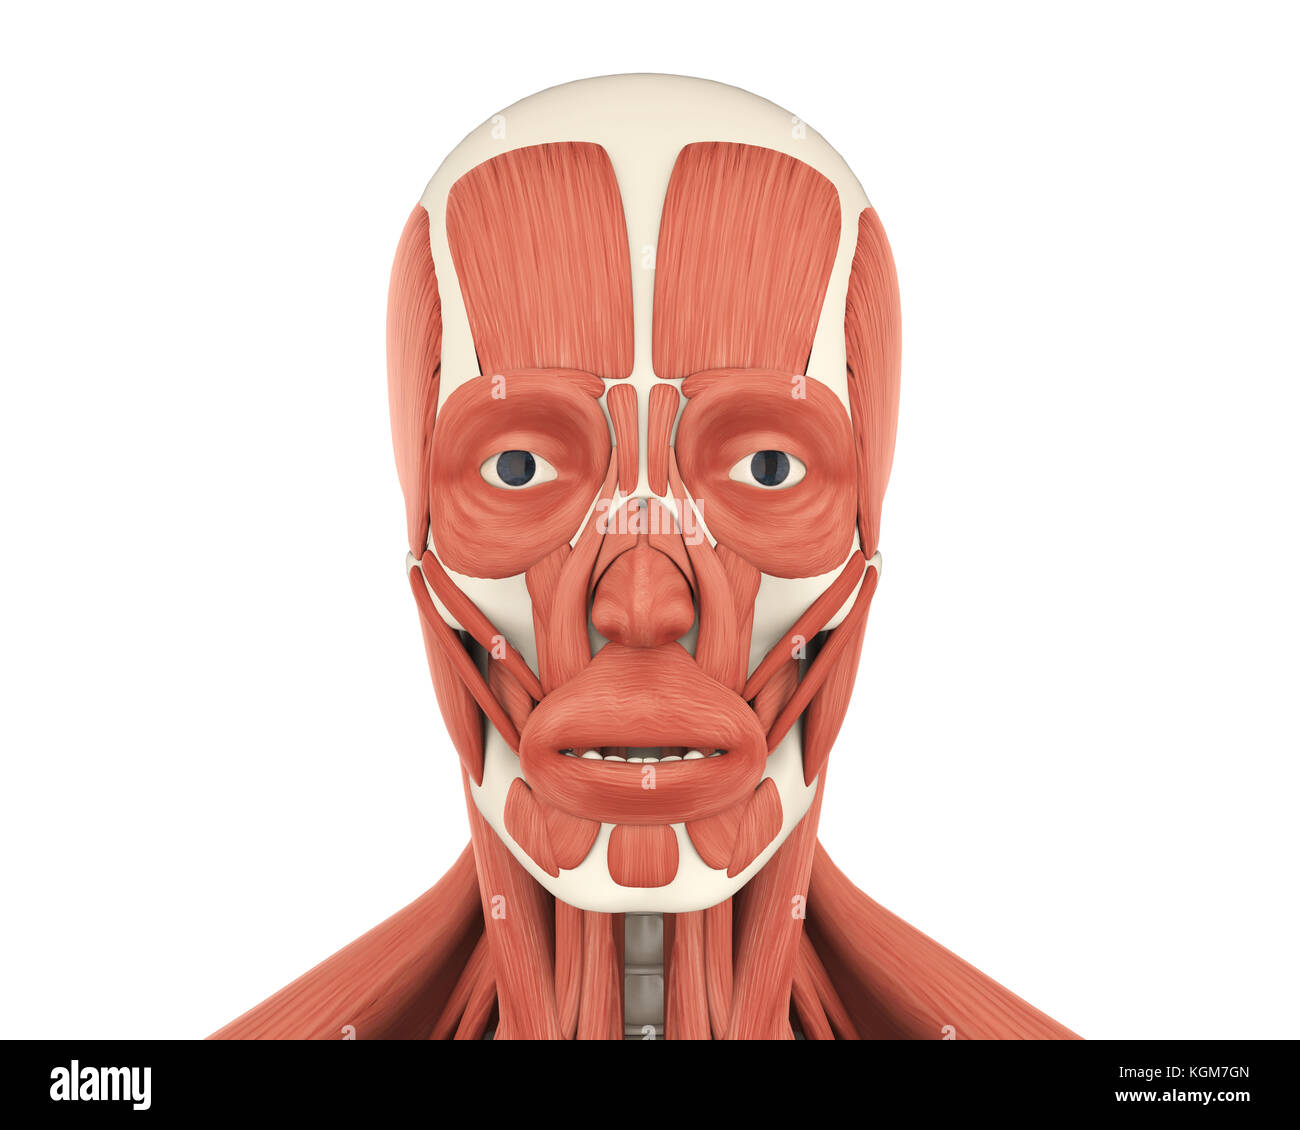 Human Facial Muscles Anatomy Stock Photo: 165172805 - Alamy